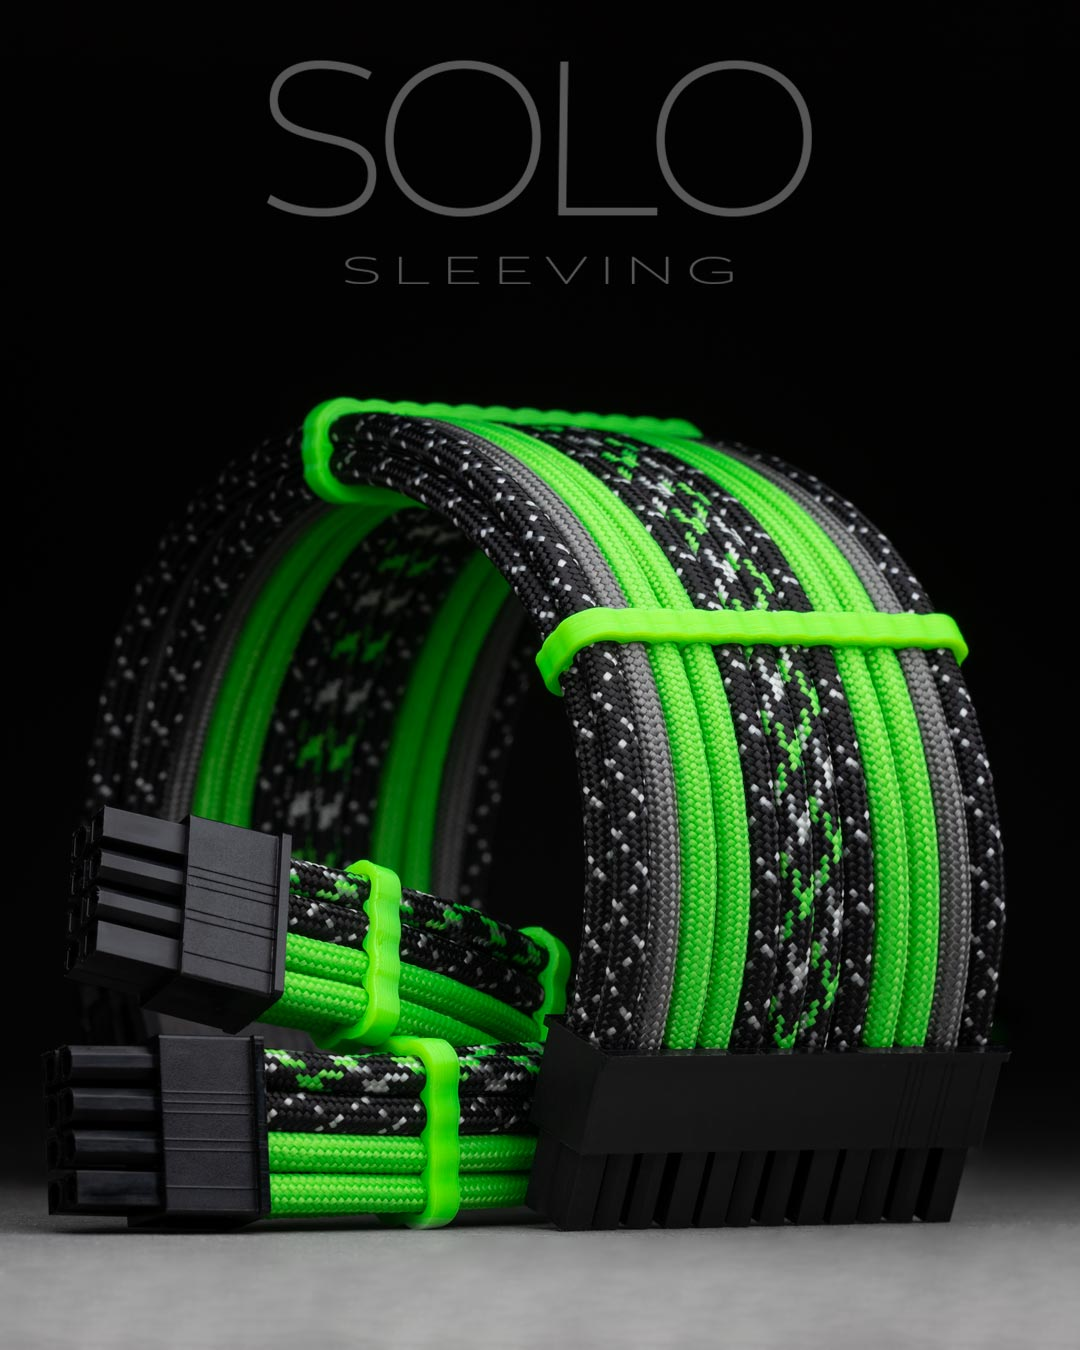 Neon Green Sleeved Extension Cables for Custom PC Builds